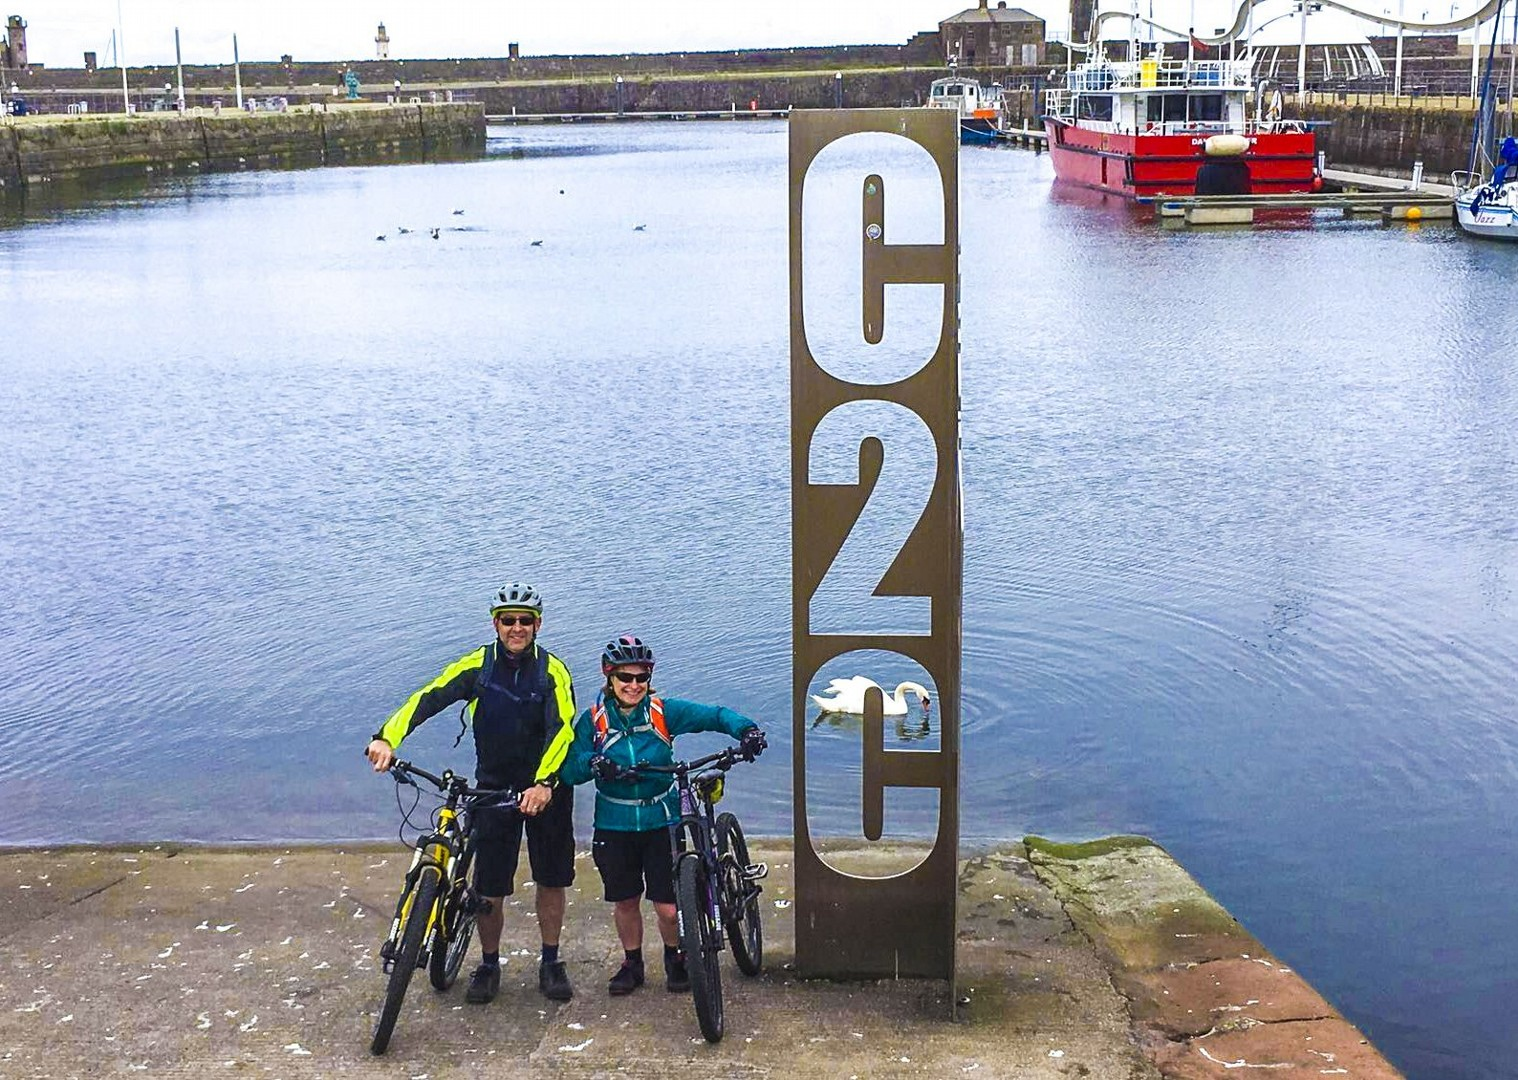 coast-to-coast-uk-whitehaven-to-newcastle-experience.jpg - UK - C2C - Coast to Coast - Supported Leisure Cycling Holiday - Family Cycling